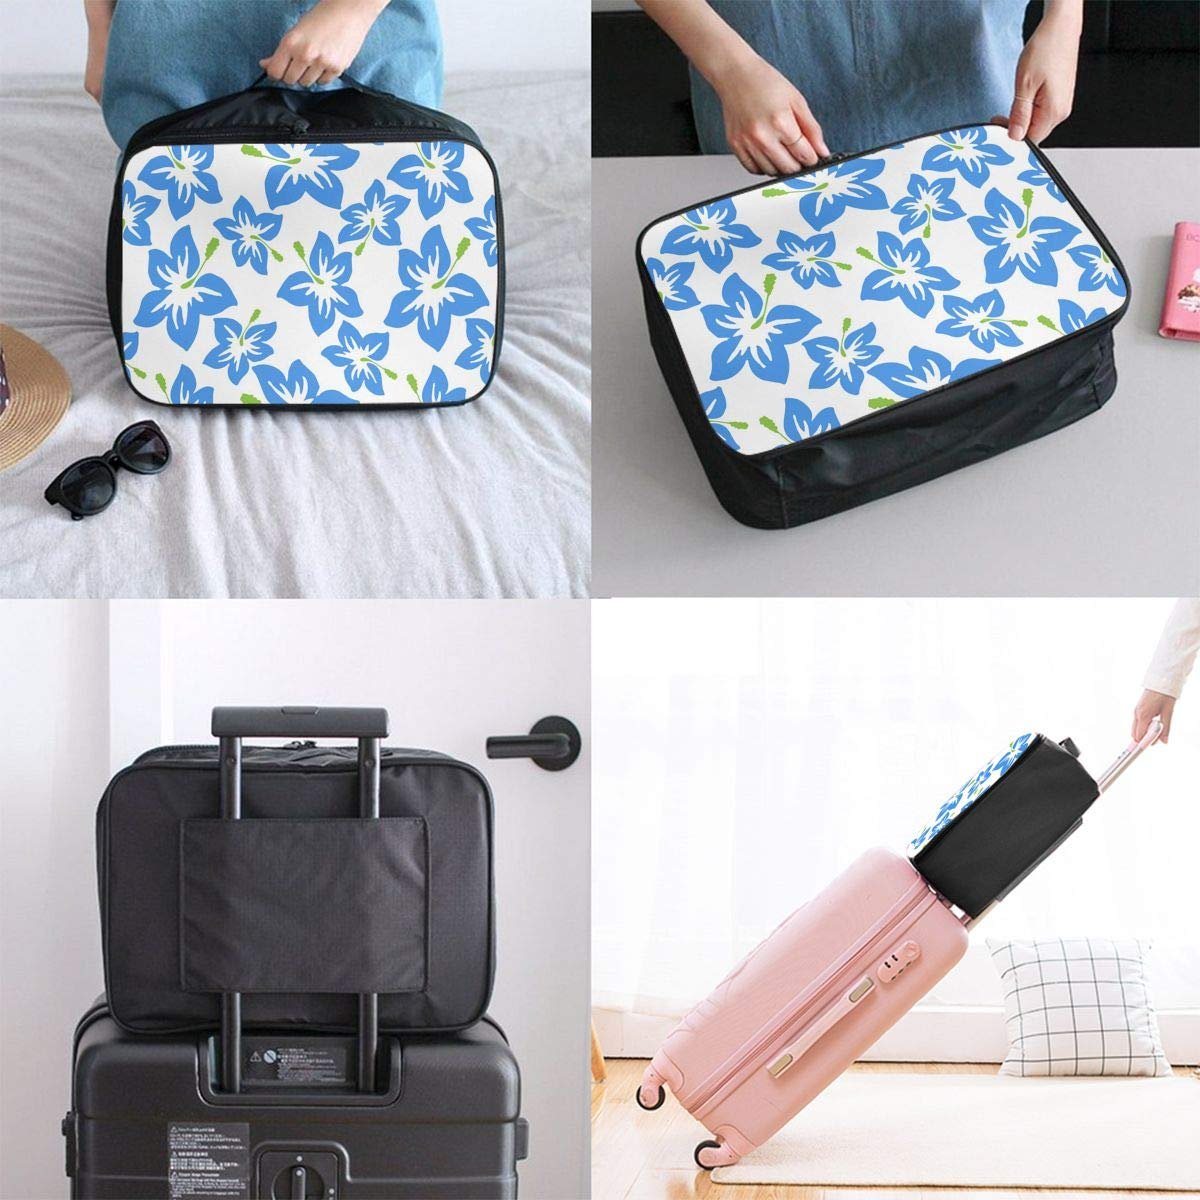 The Flower Of Blue Sea Travel Bag Portable Luggage Bags Duffle Bag Large Capacity Travel Organizer Bag